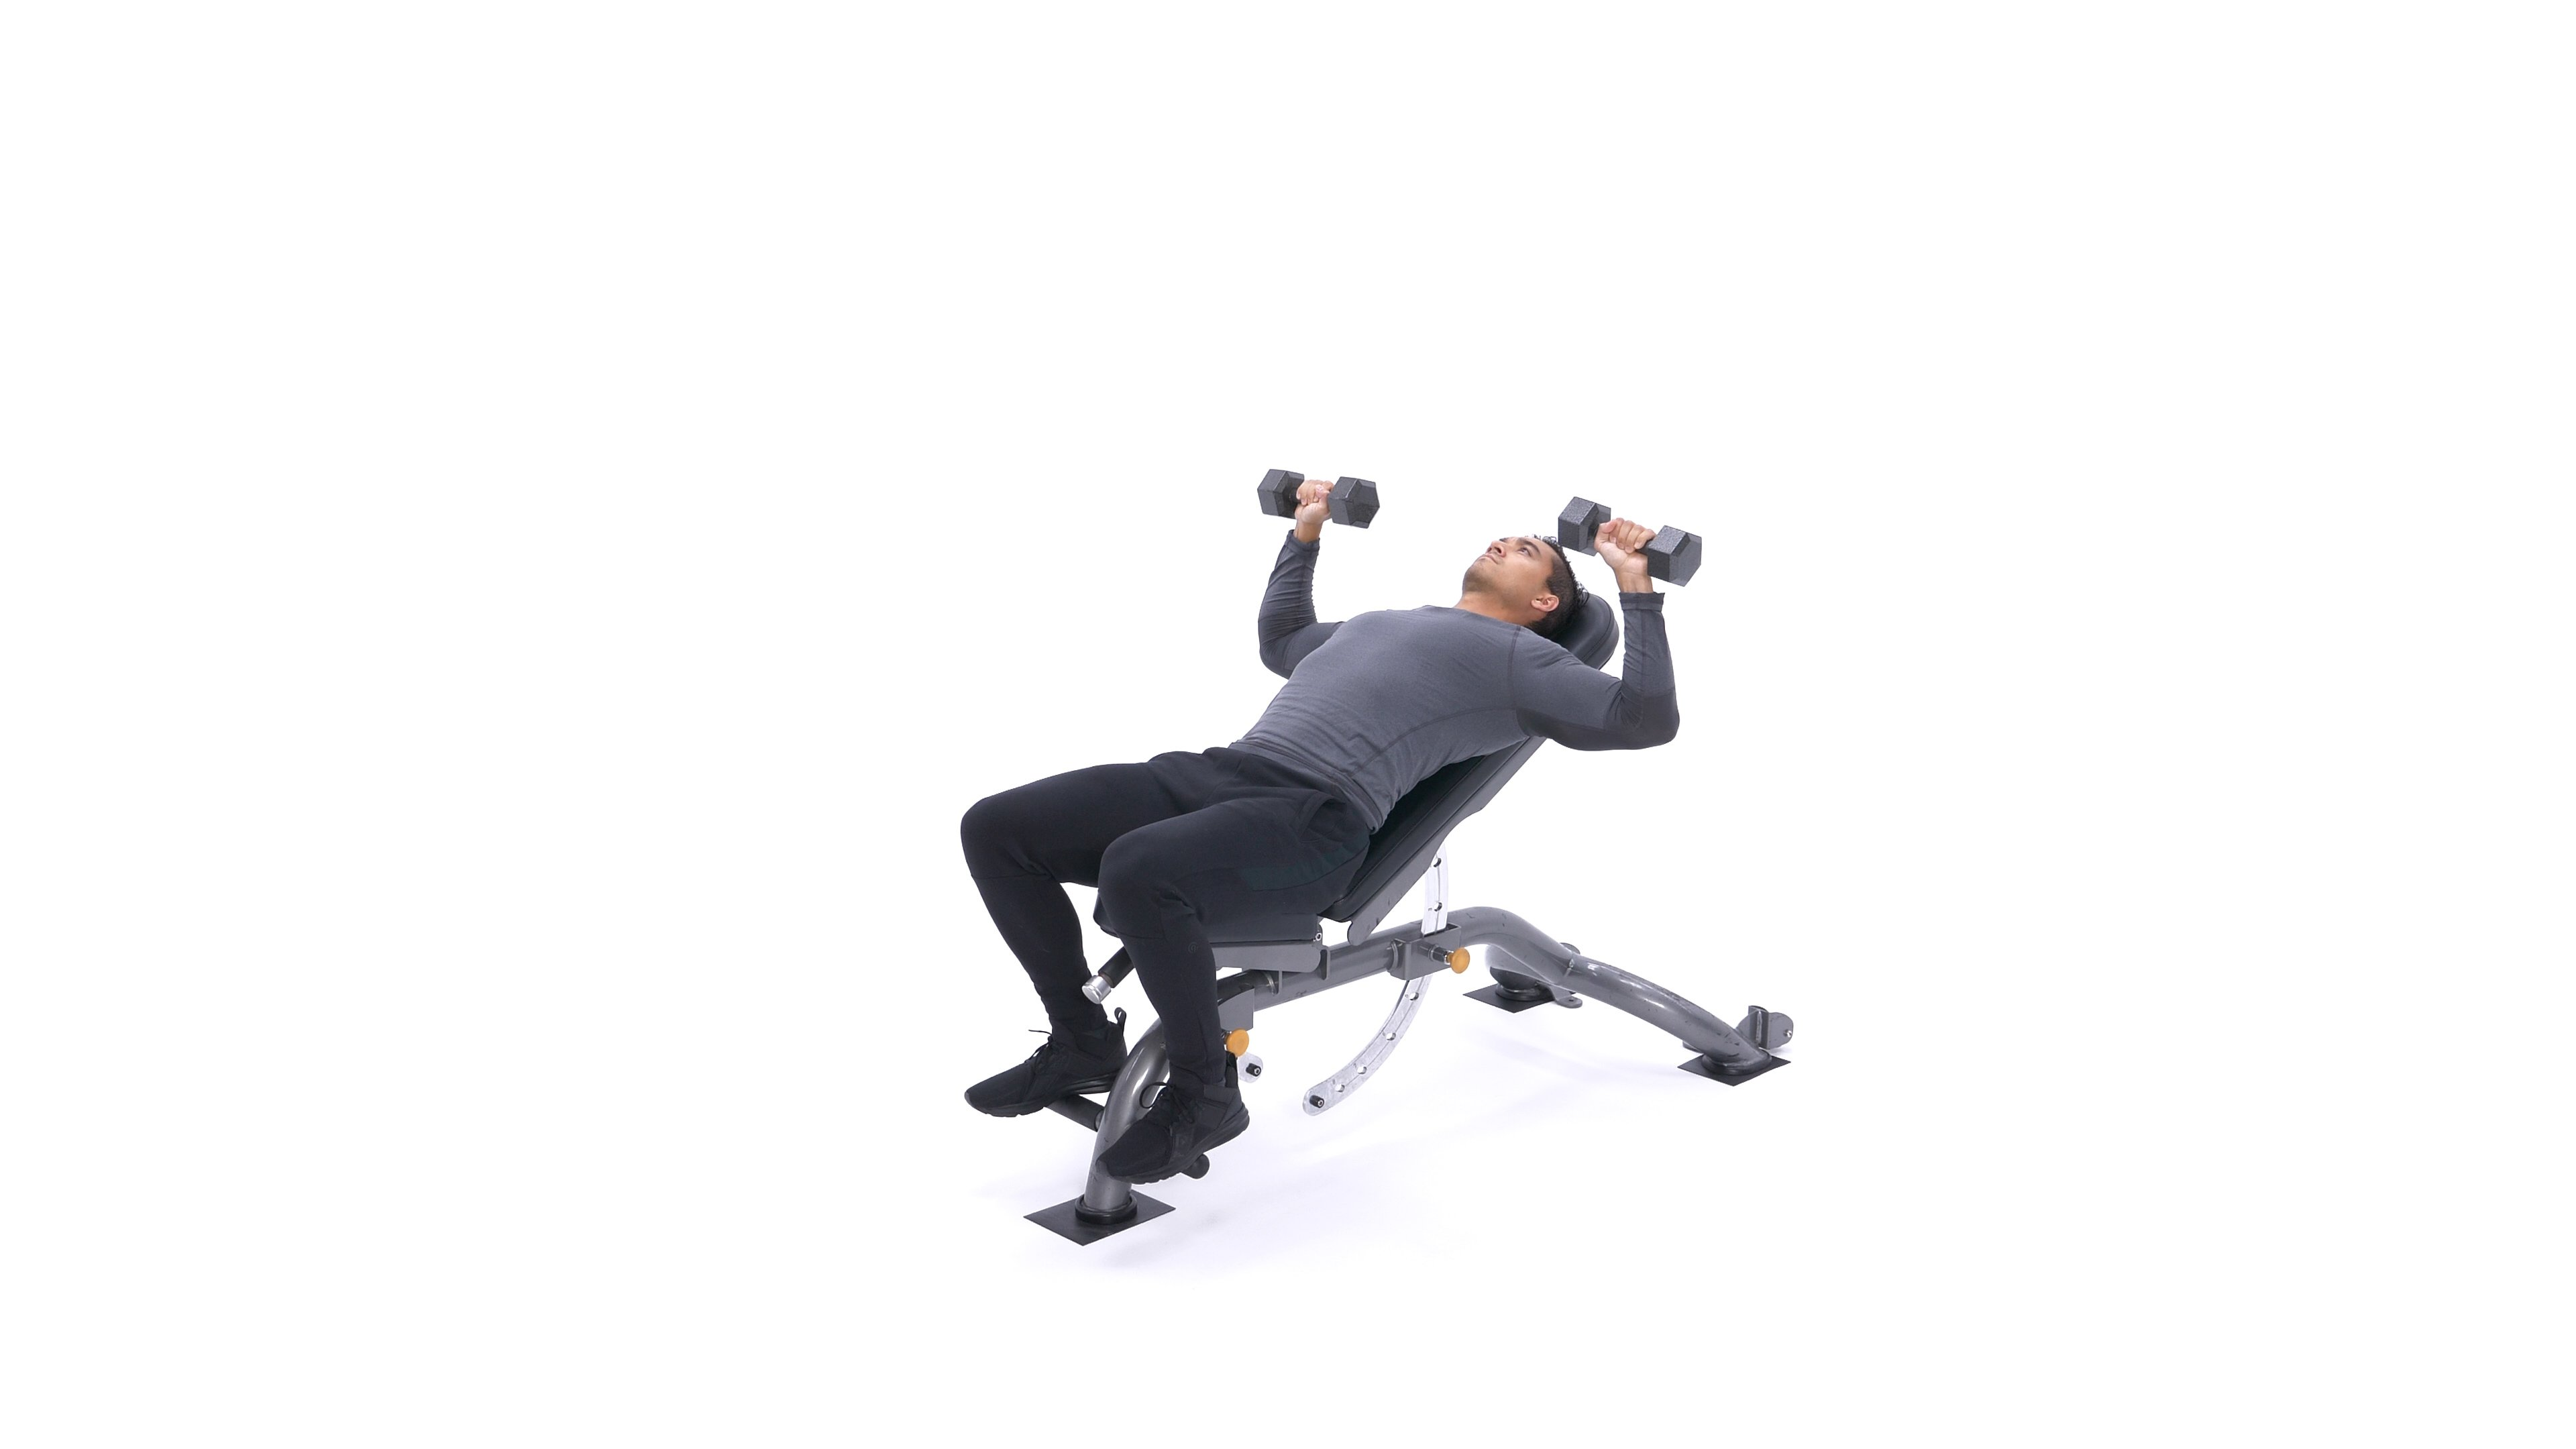 Incline dumbbell bench press image